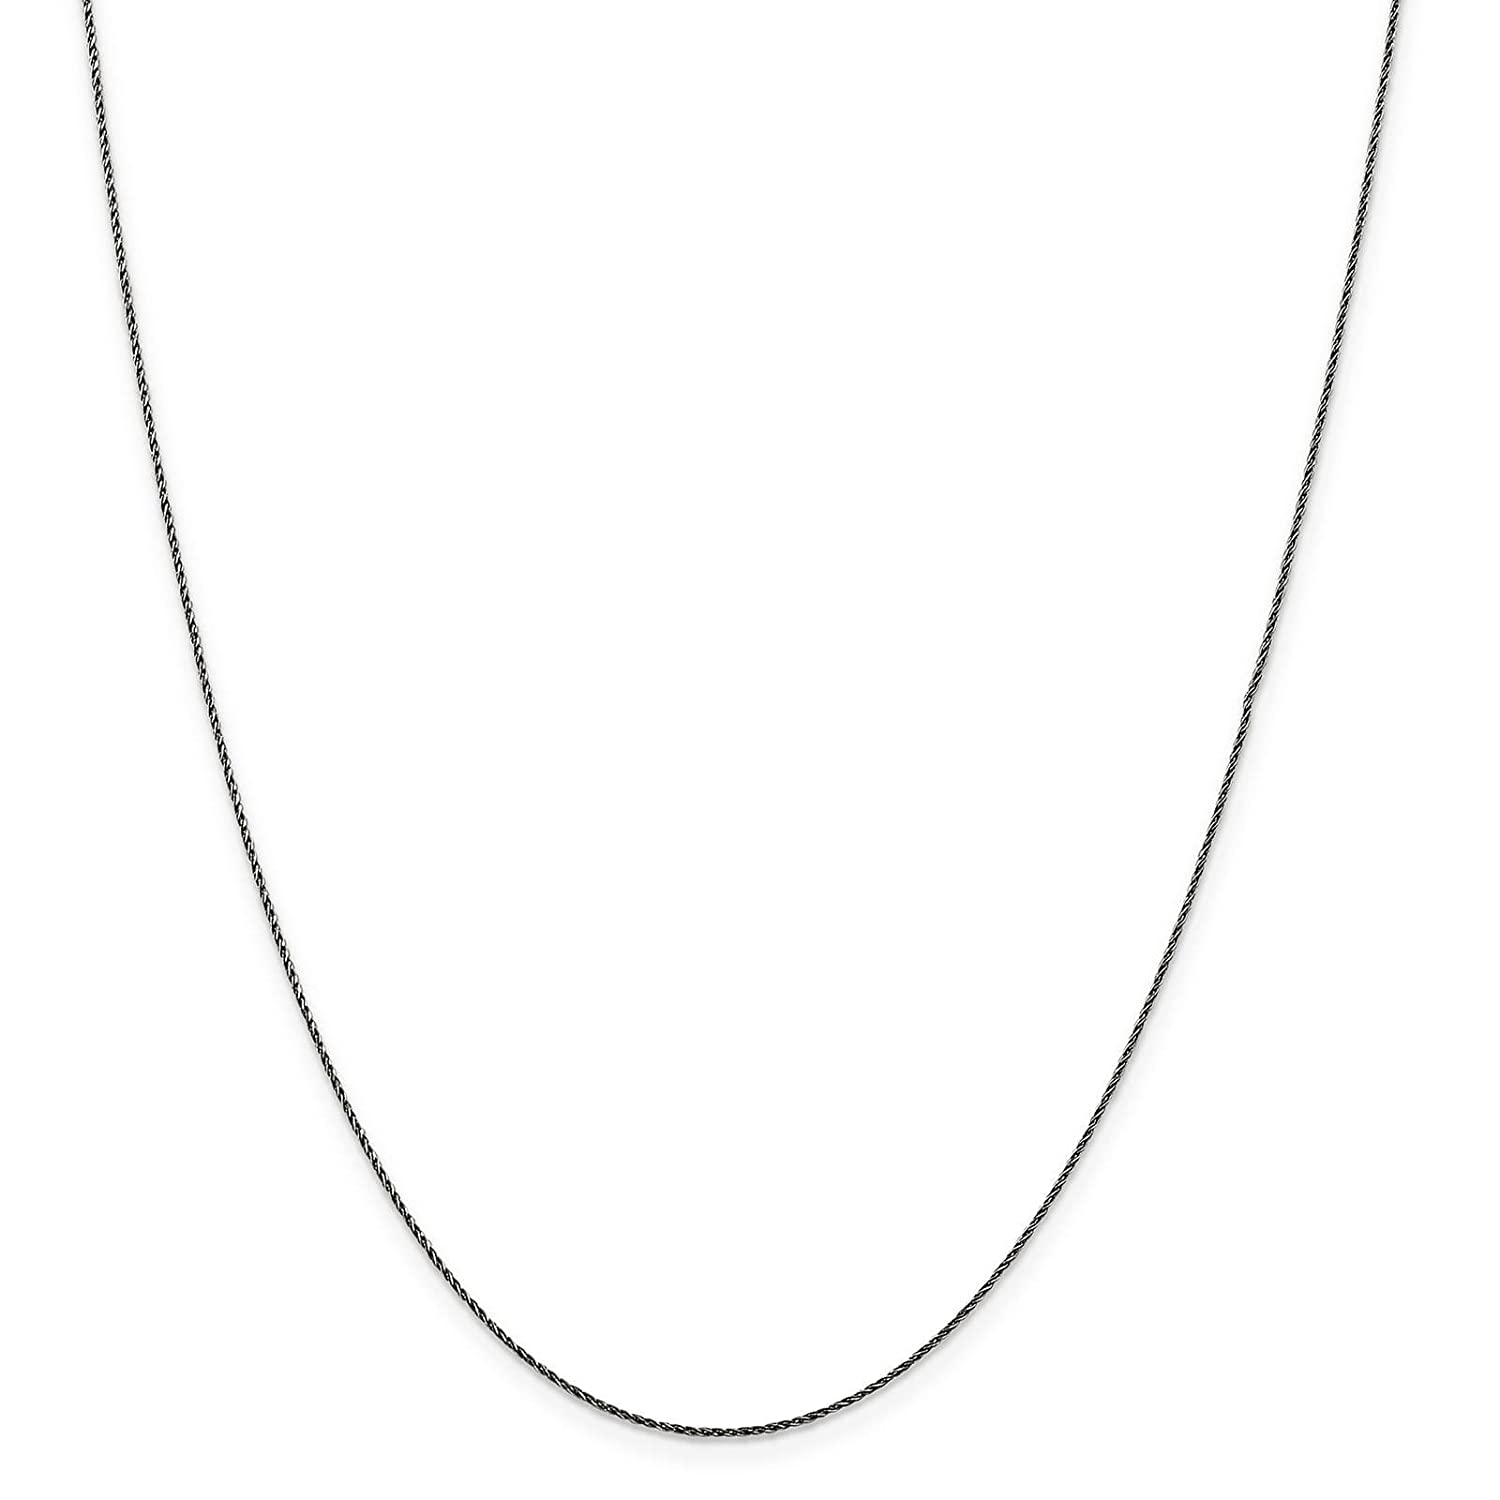 925 Sterling Silver Ruthenium-Plated .7mm Fancy Diamond-cut Snake Chain Necklace 7-24